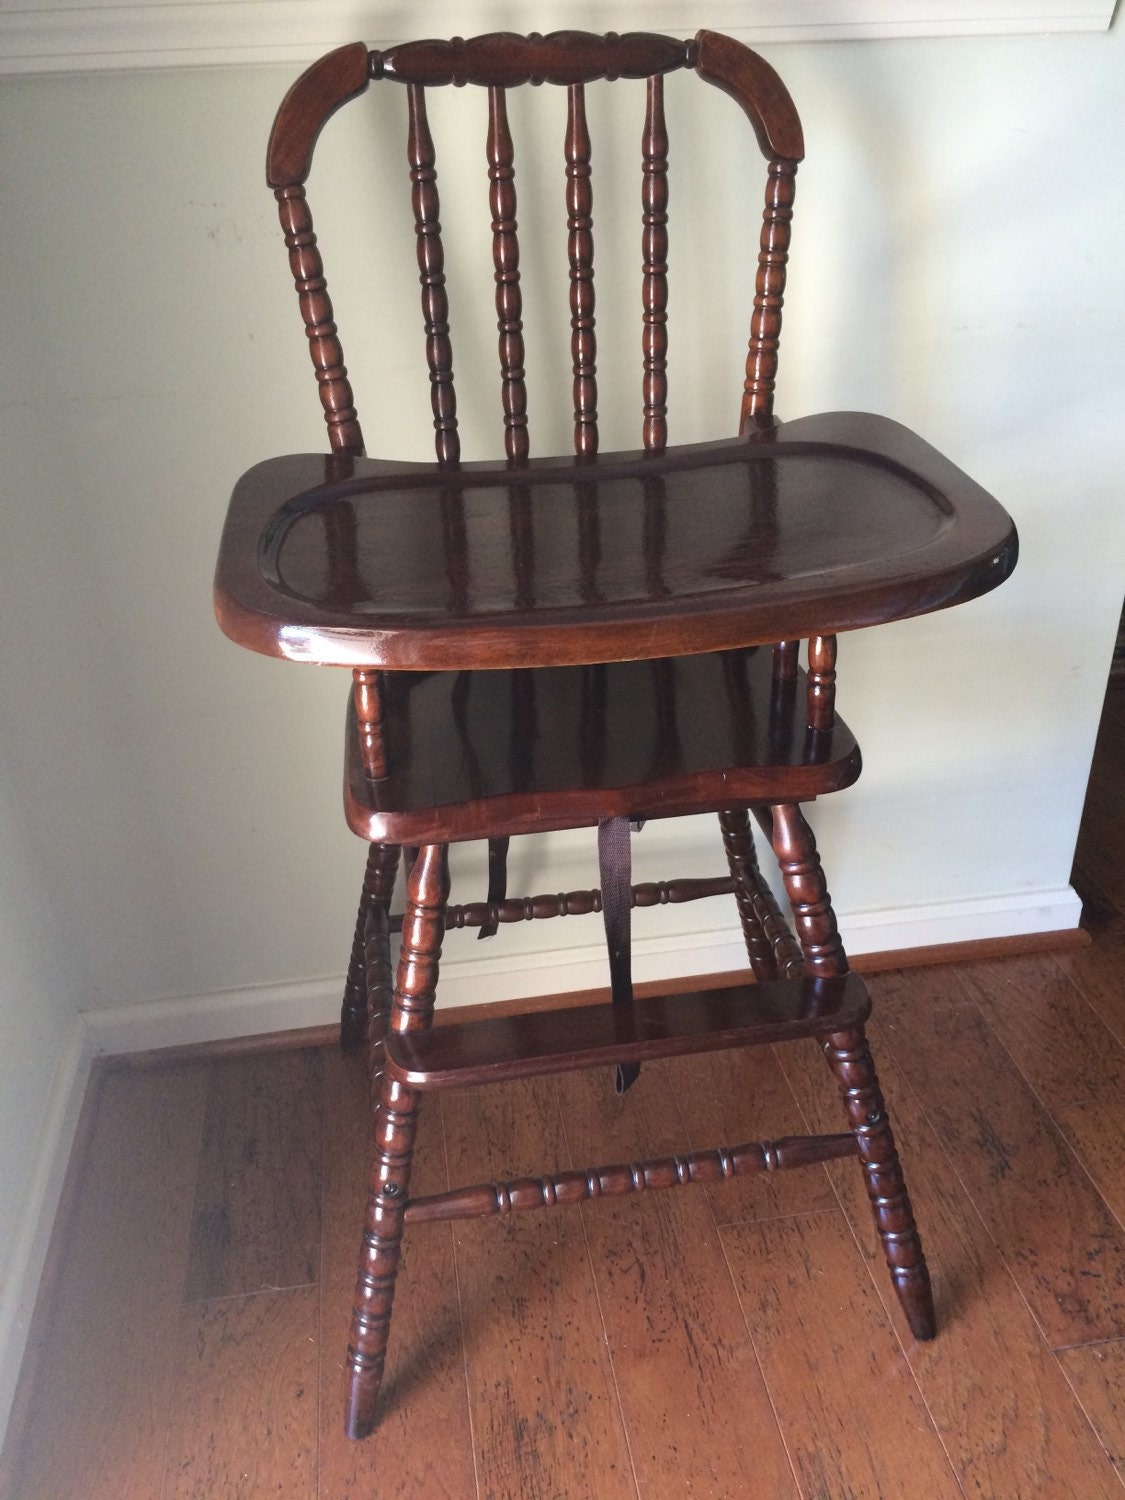 Vintage Wooden High Chair Jenny Lind on Vintage Wooden Baby High Chair